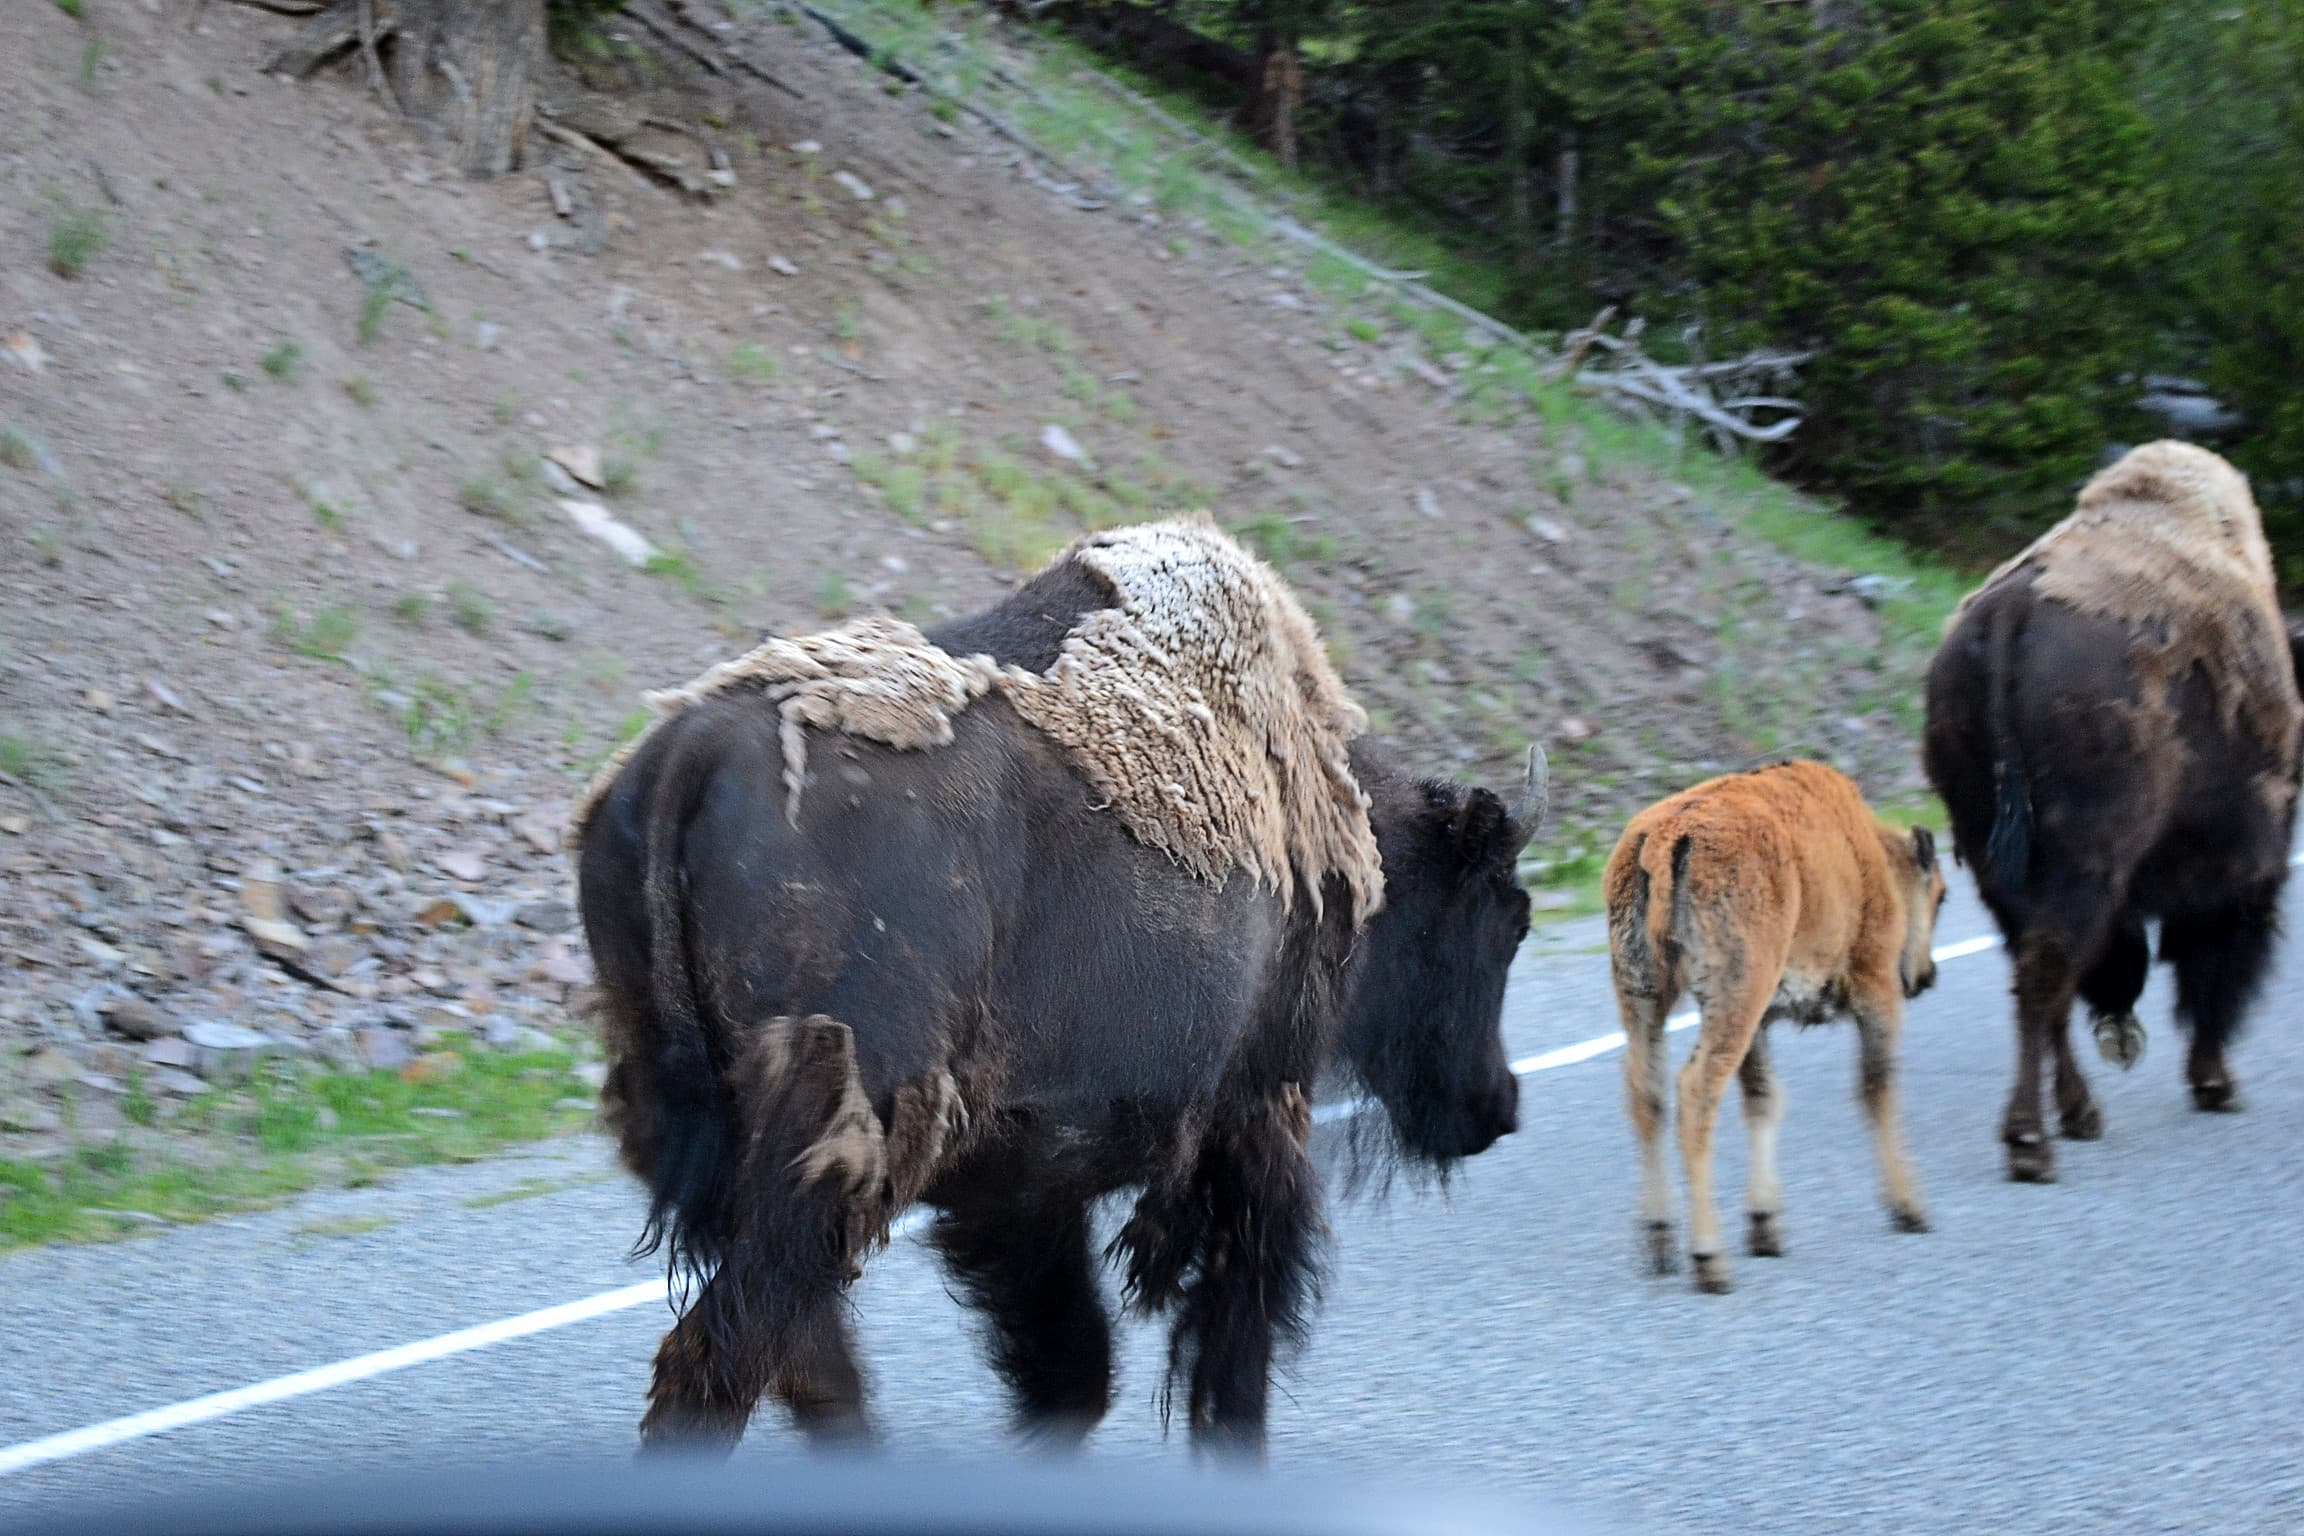 Passed by a herd of buffalo going to its  grazing grounds.